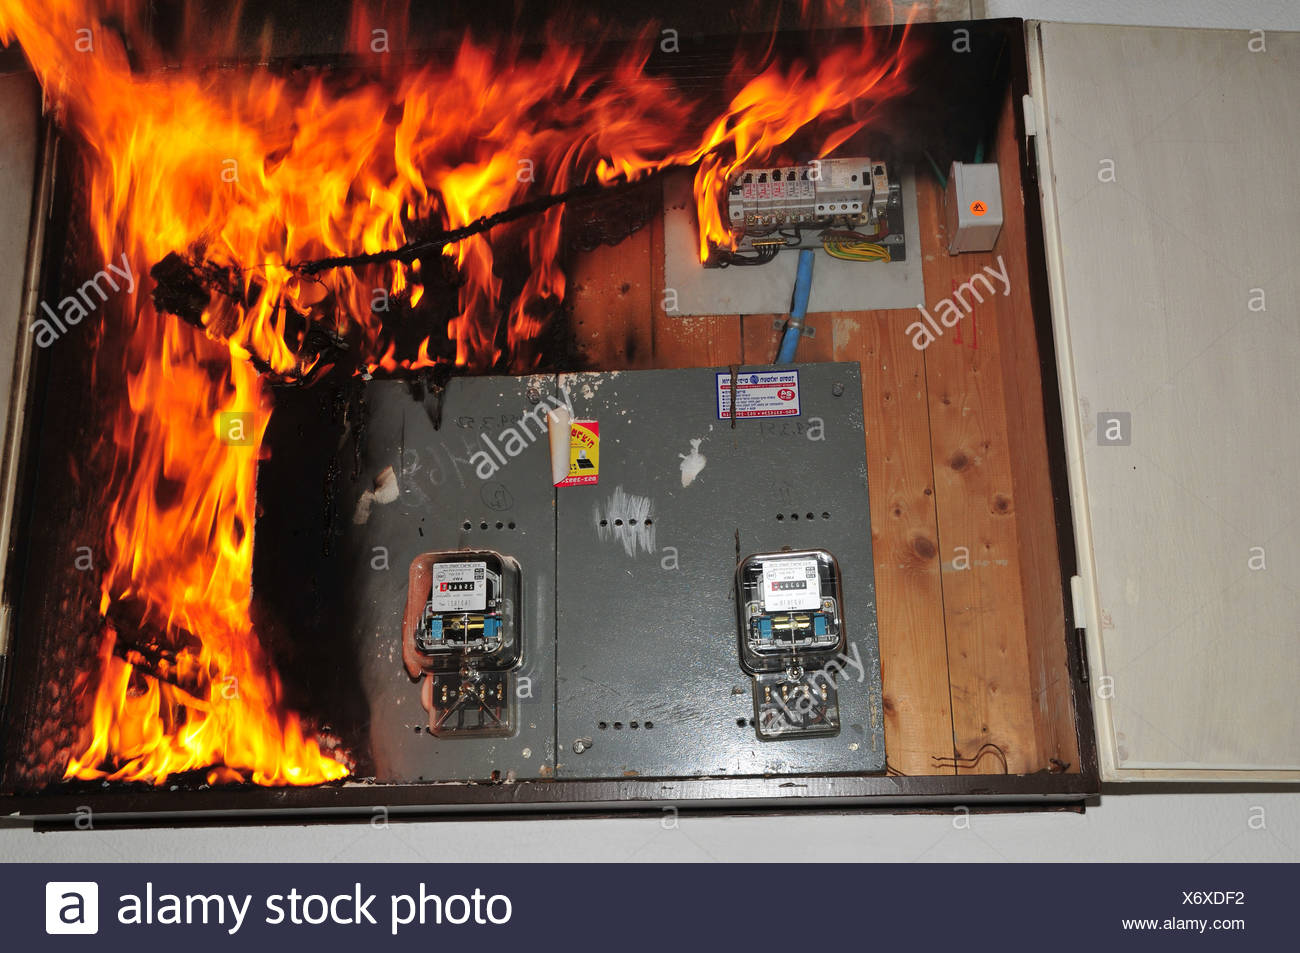 fuse box fire wiring library Relay in Fuse Box Fires From Water a fire broke out in a household electrical fuse box flames consumed the board photographed